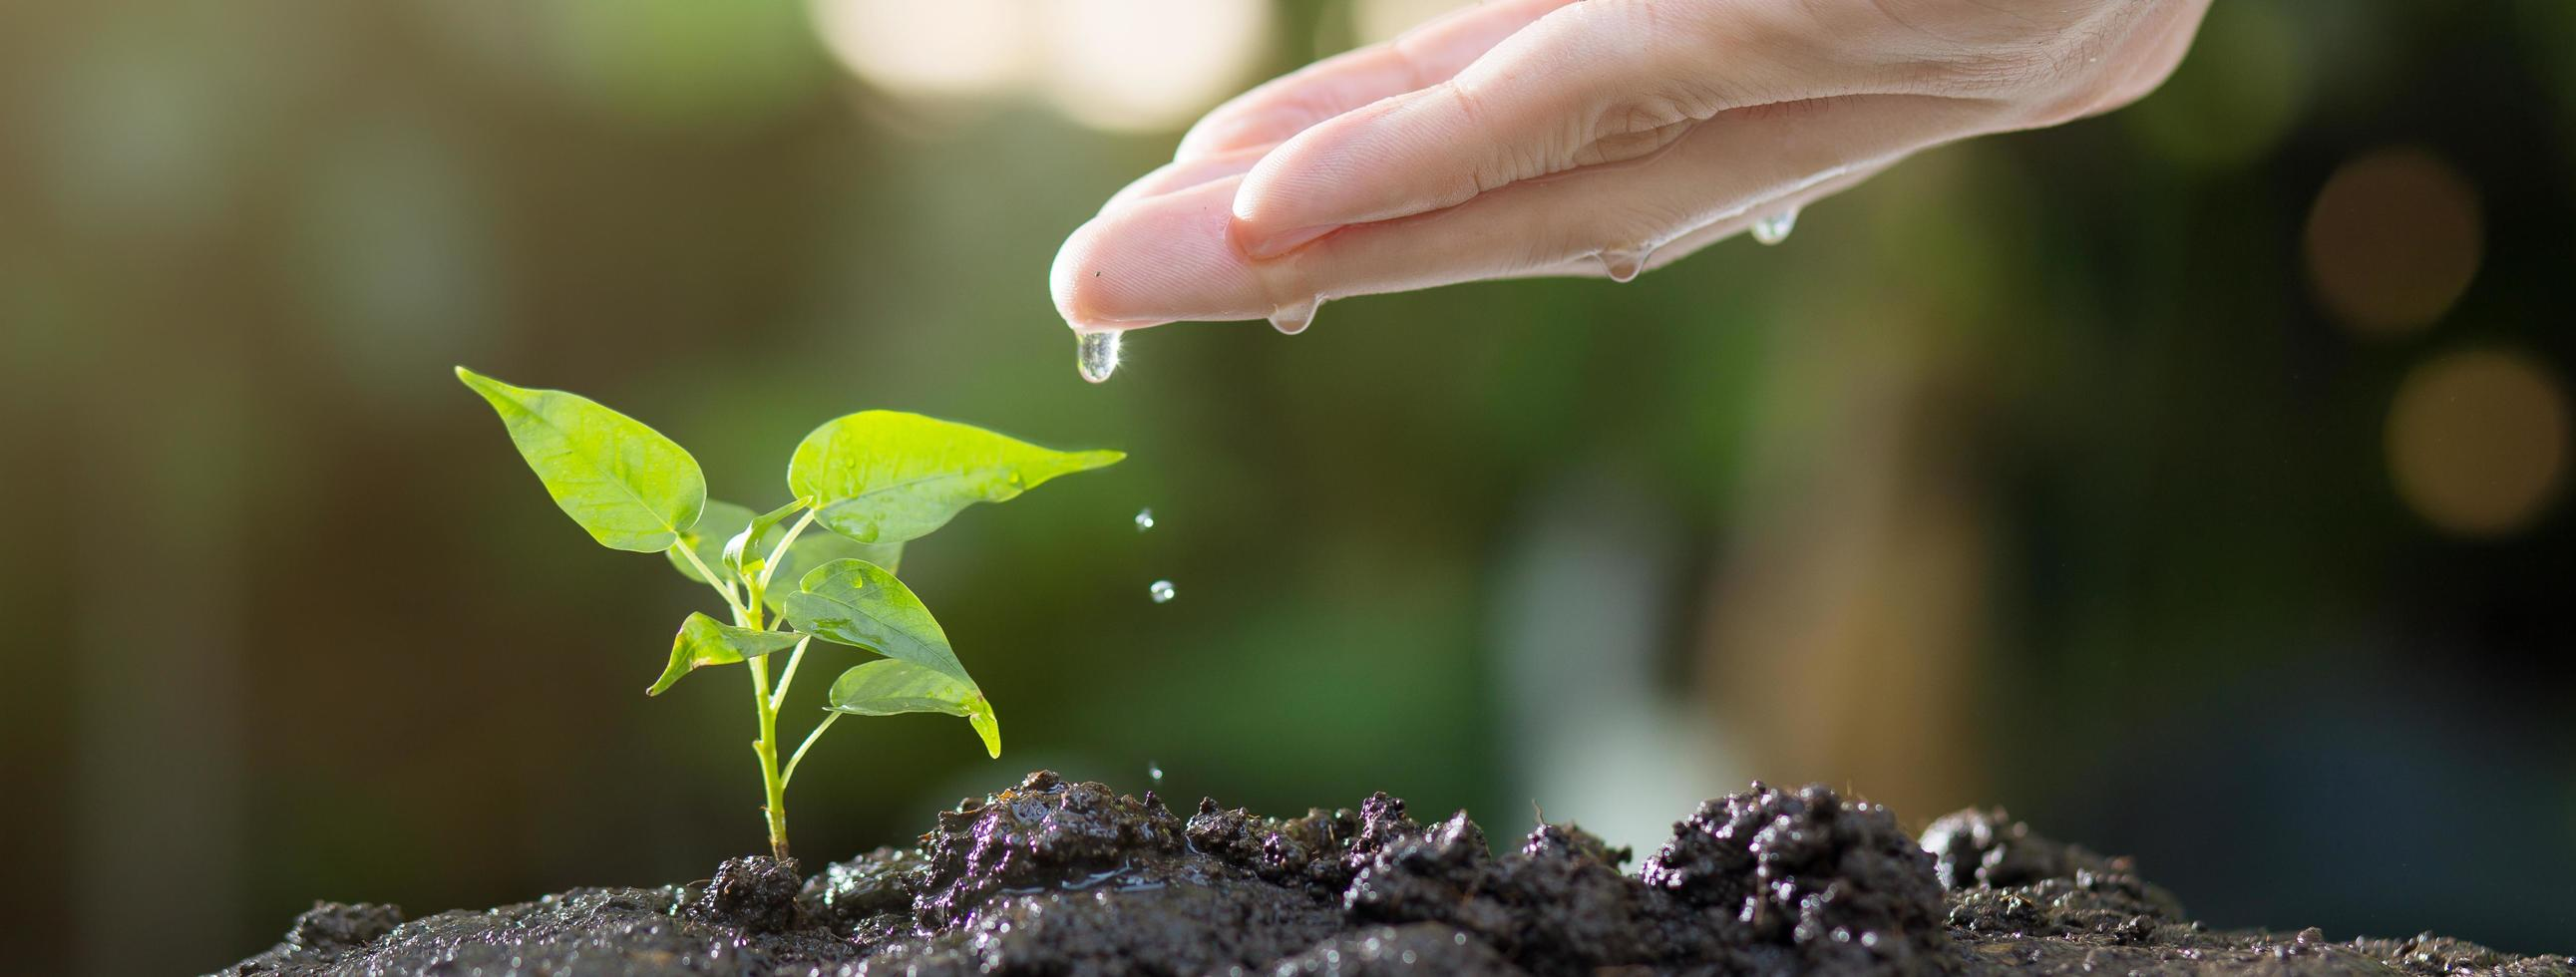 Close up of hands watering young tree on soil photo